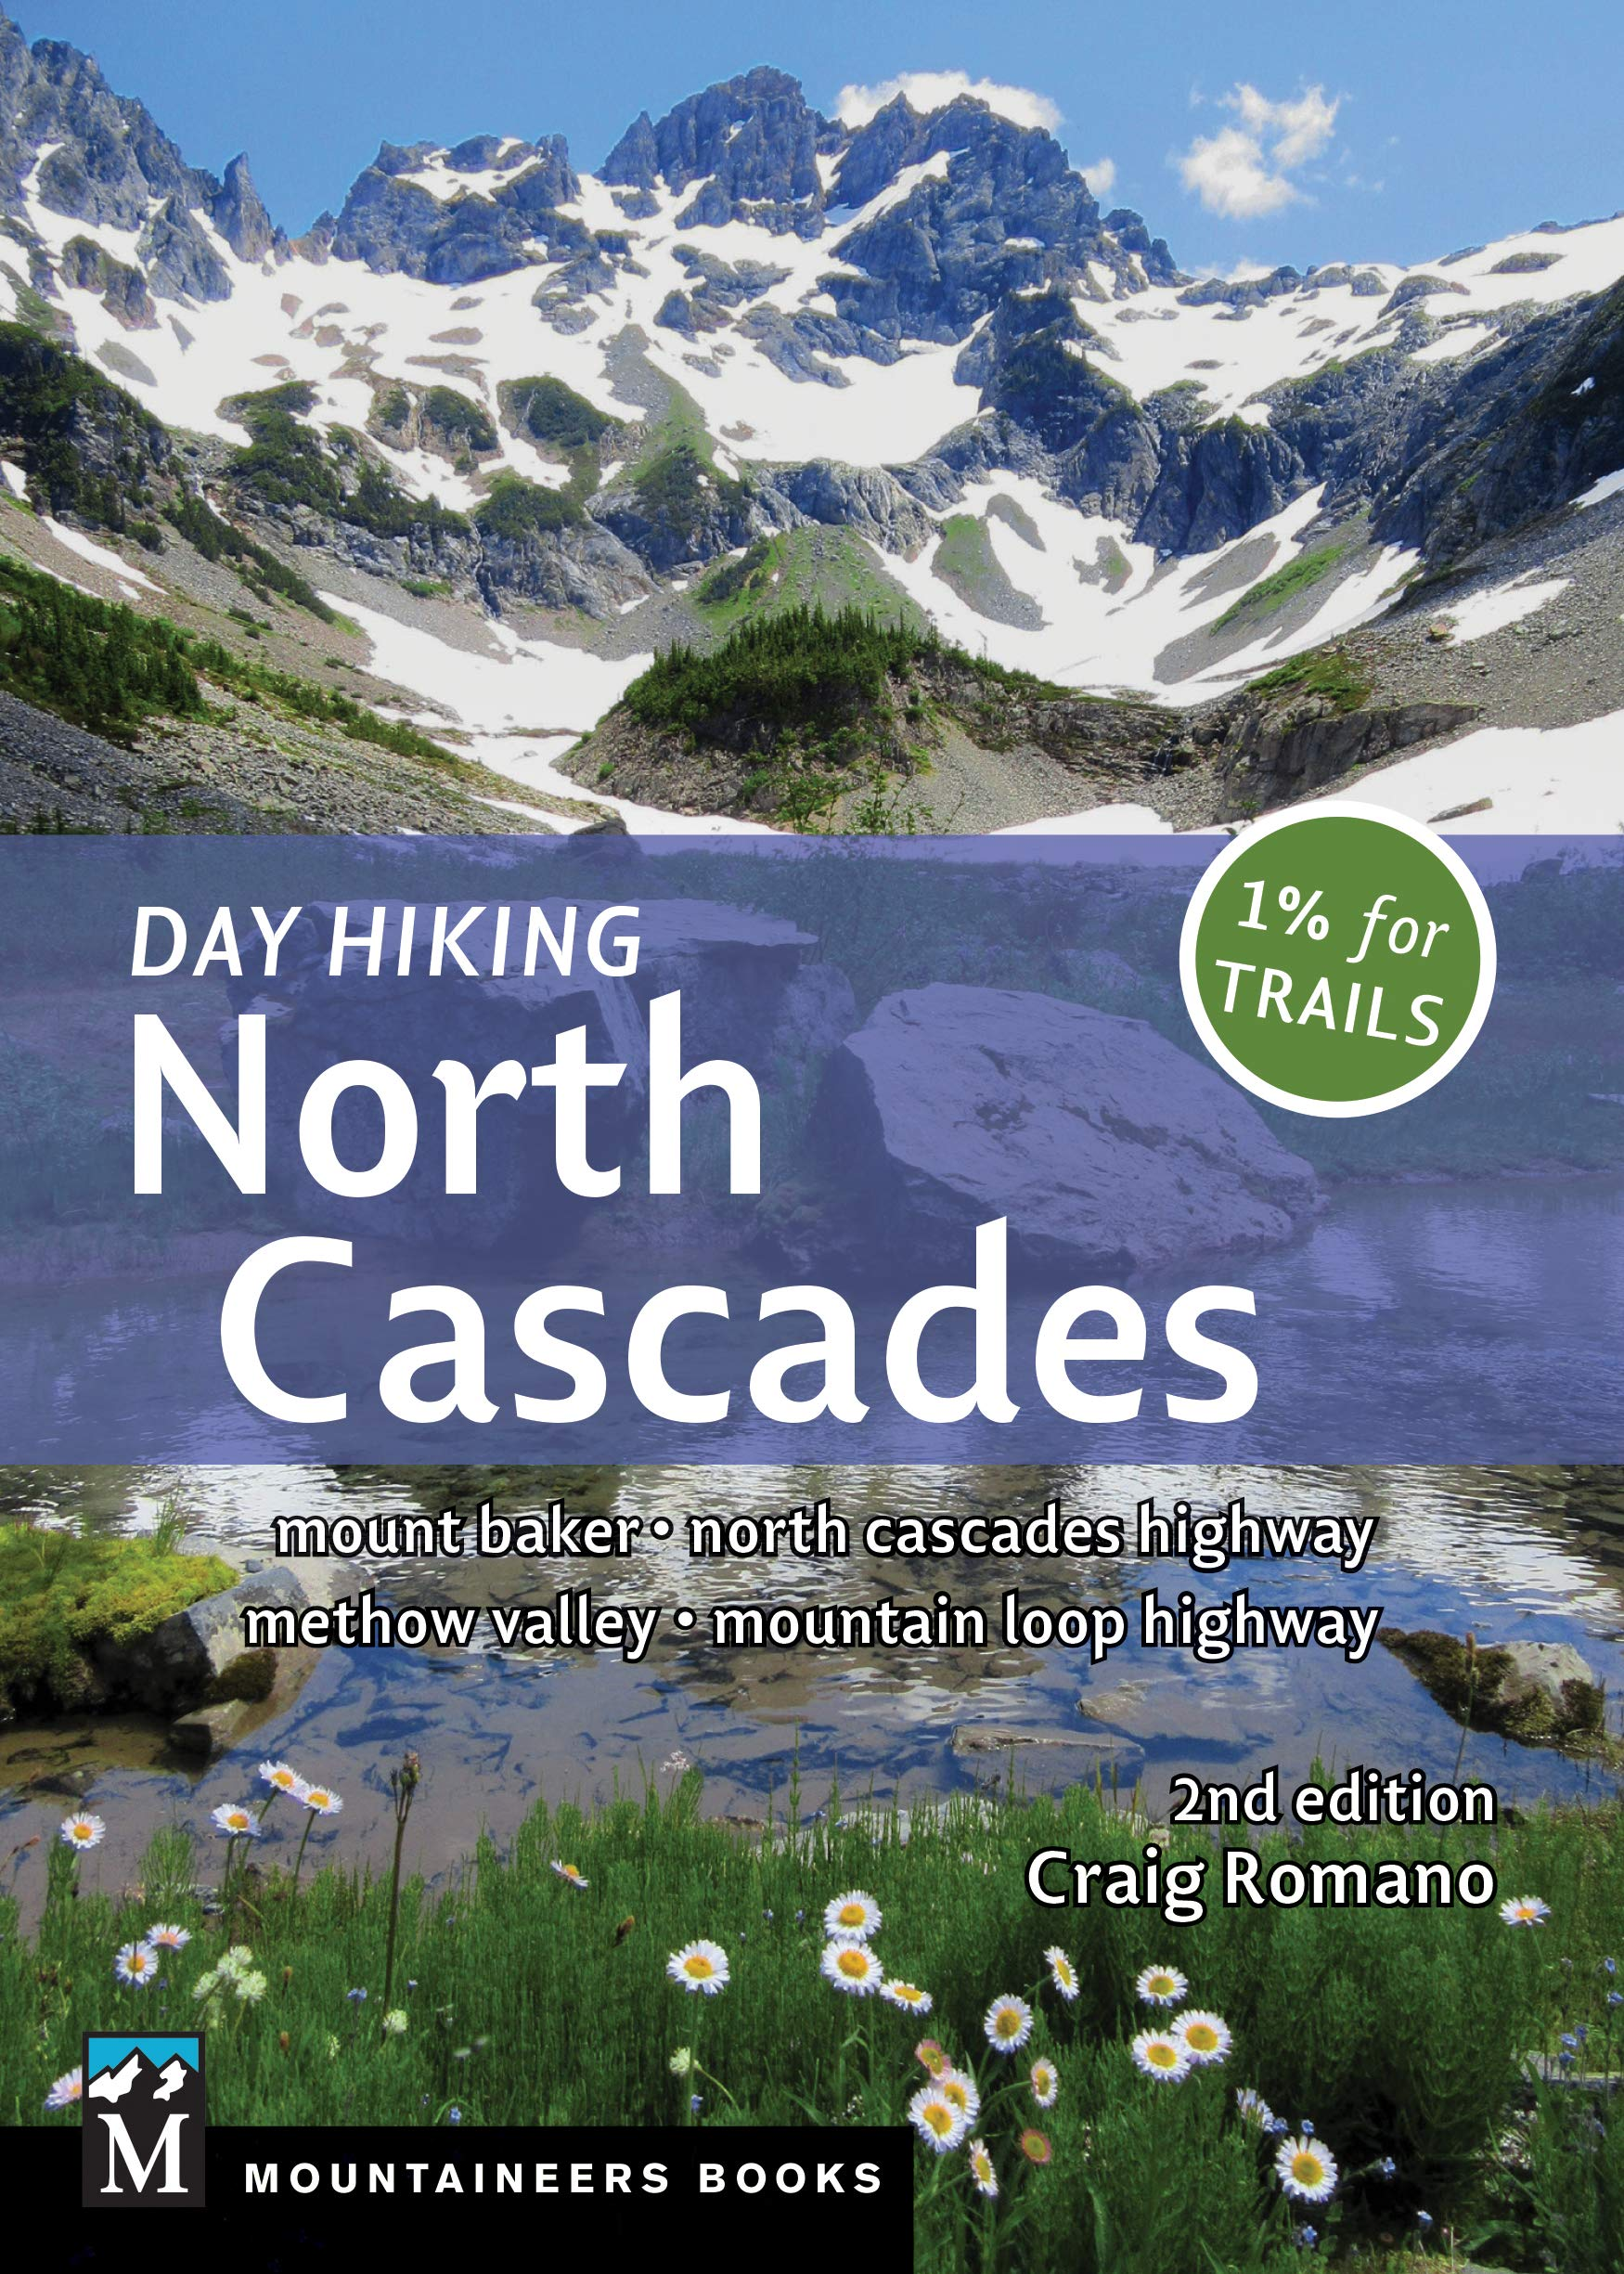 Day Hiking North Cascades: 2nd edition